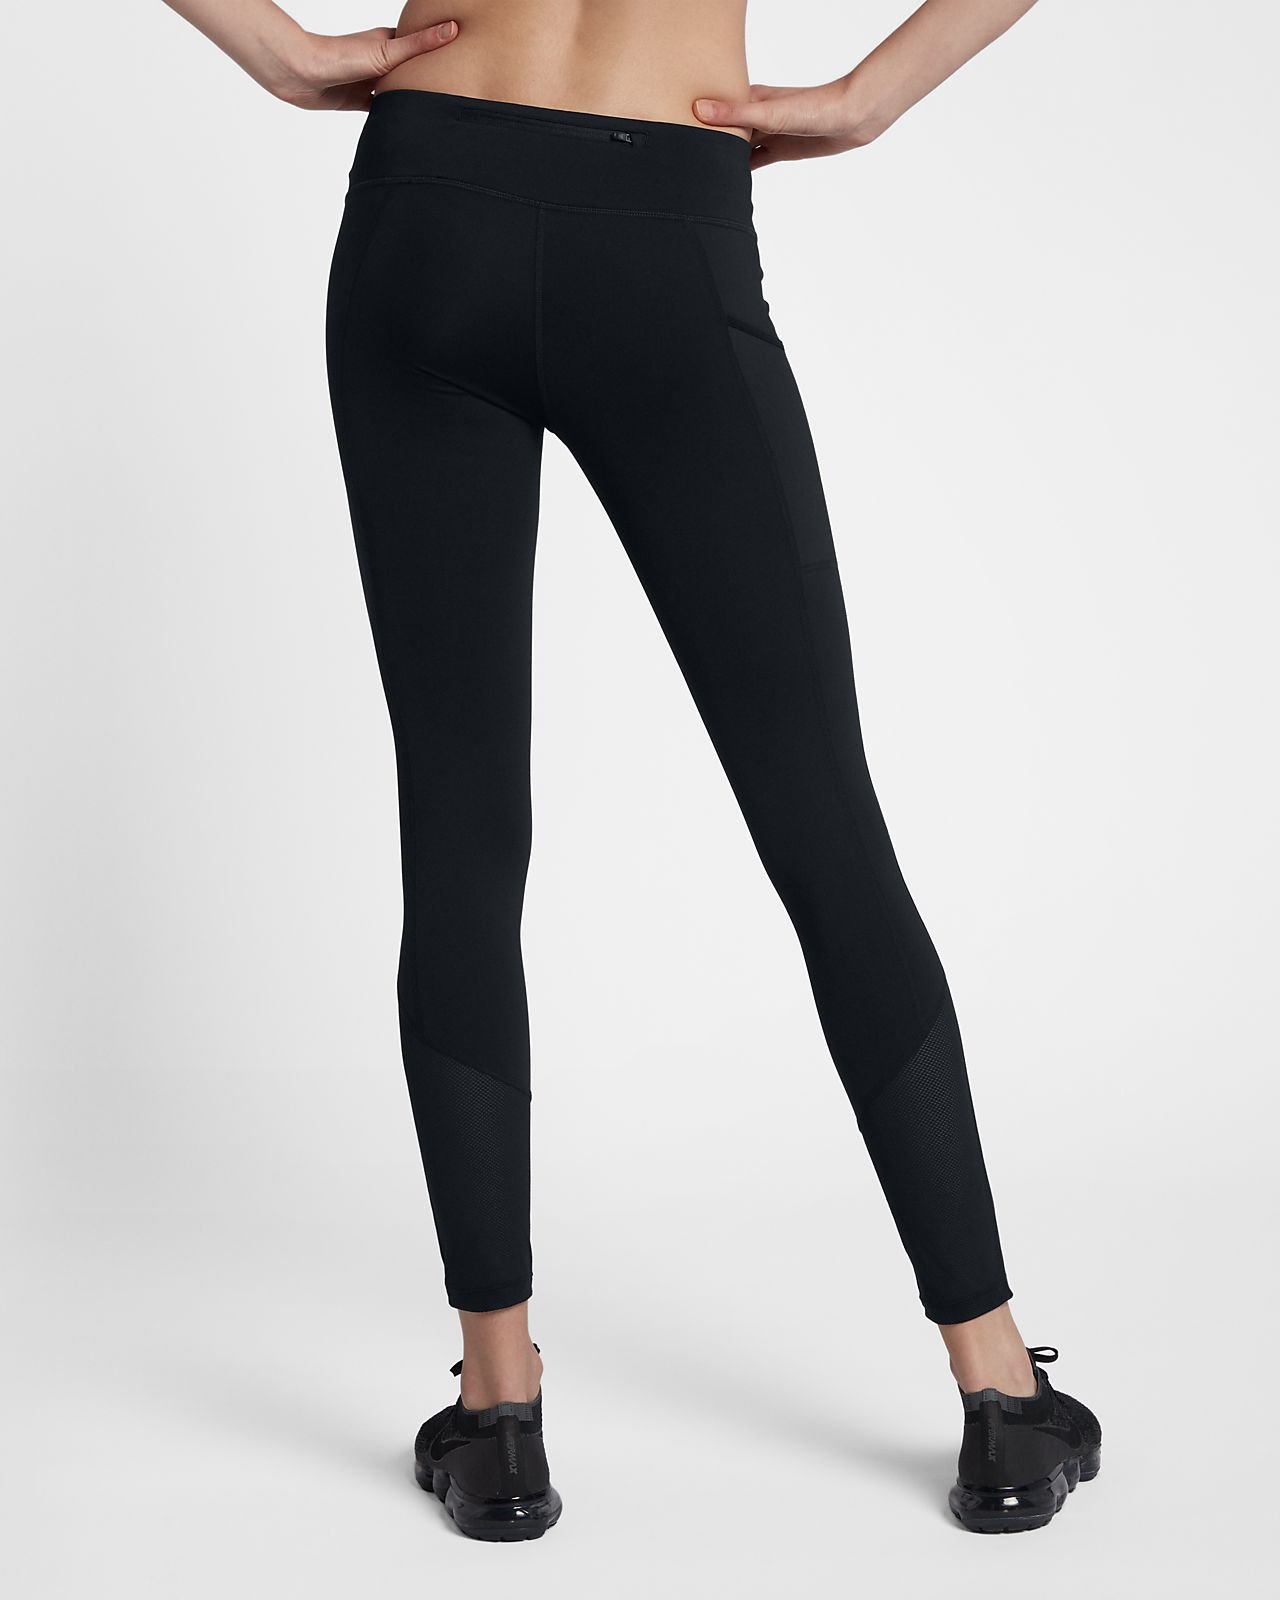 113cfb64e1 Nike Racer Women s Mid-Rise Running Tights. Nike.com GB